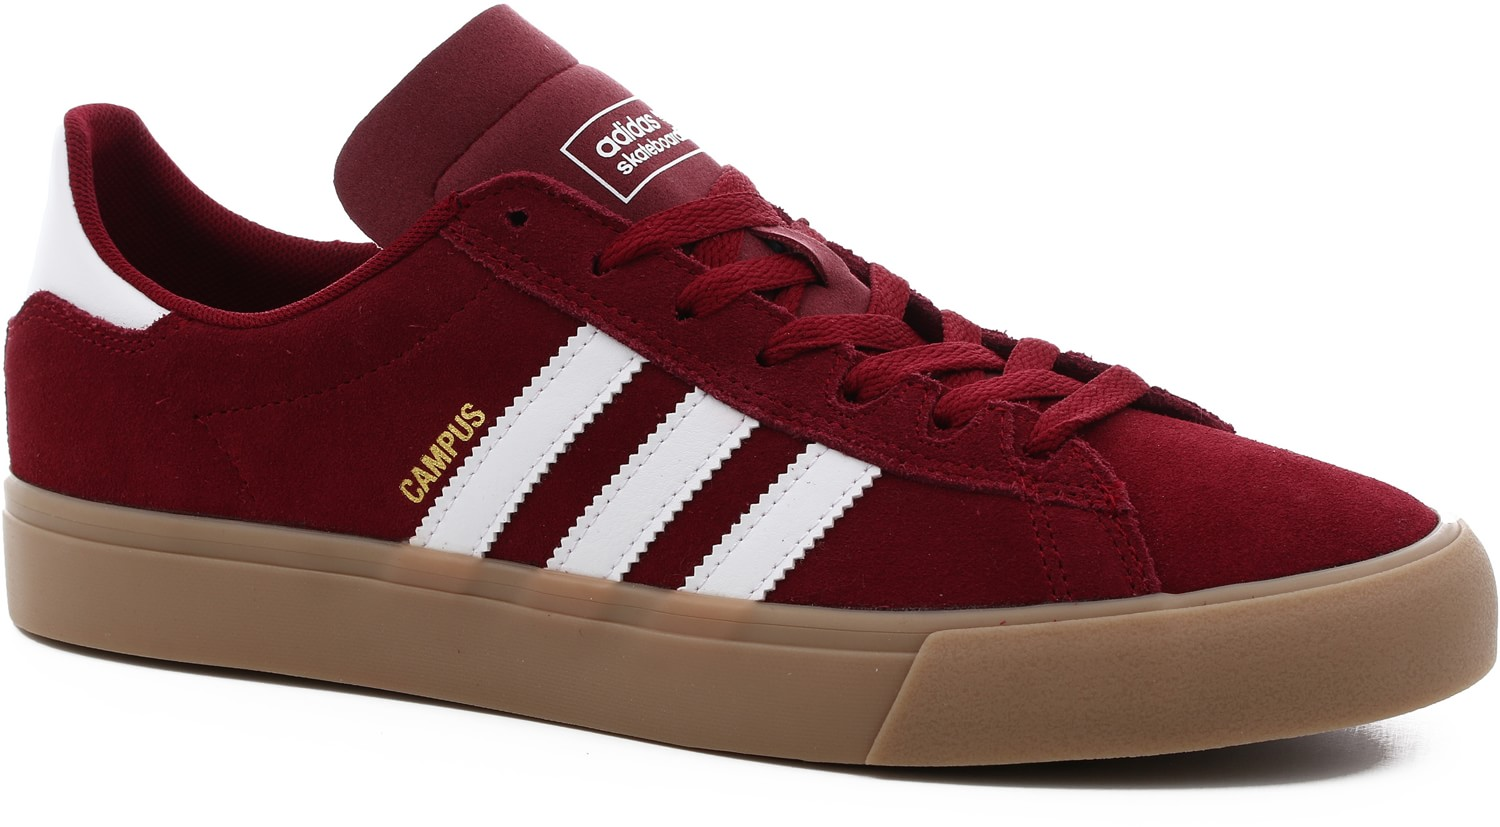 adidas campus vulc collegiate burgundy/white/gum4 EUCDNCY